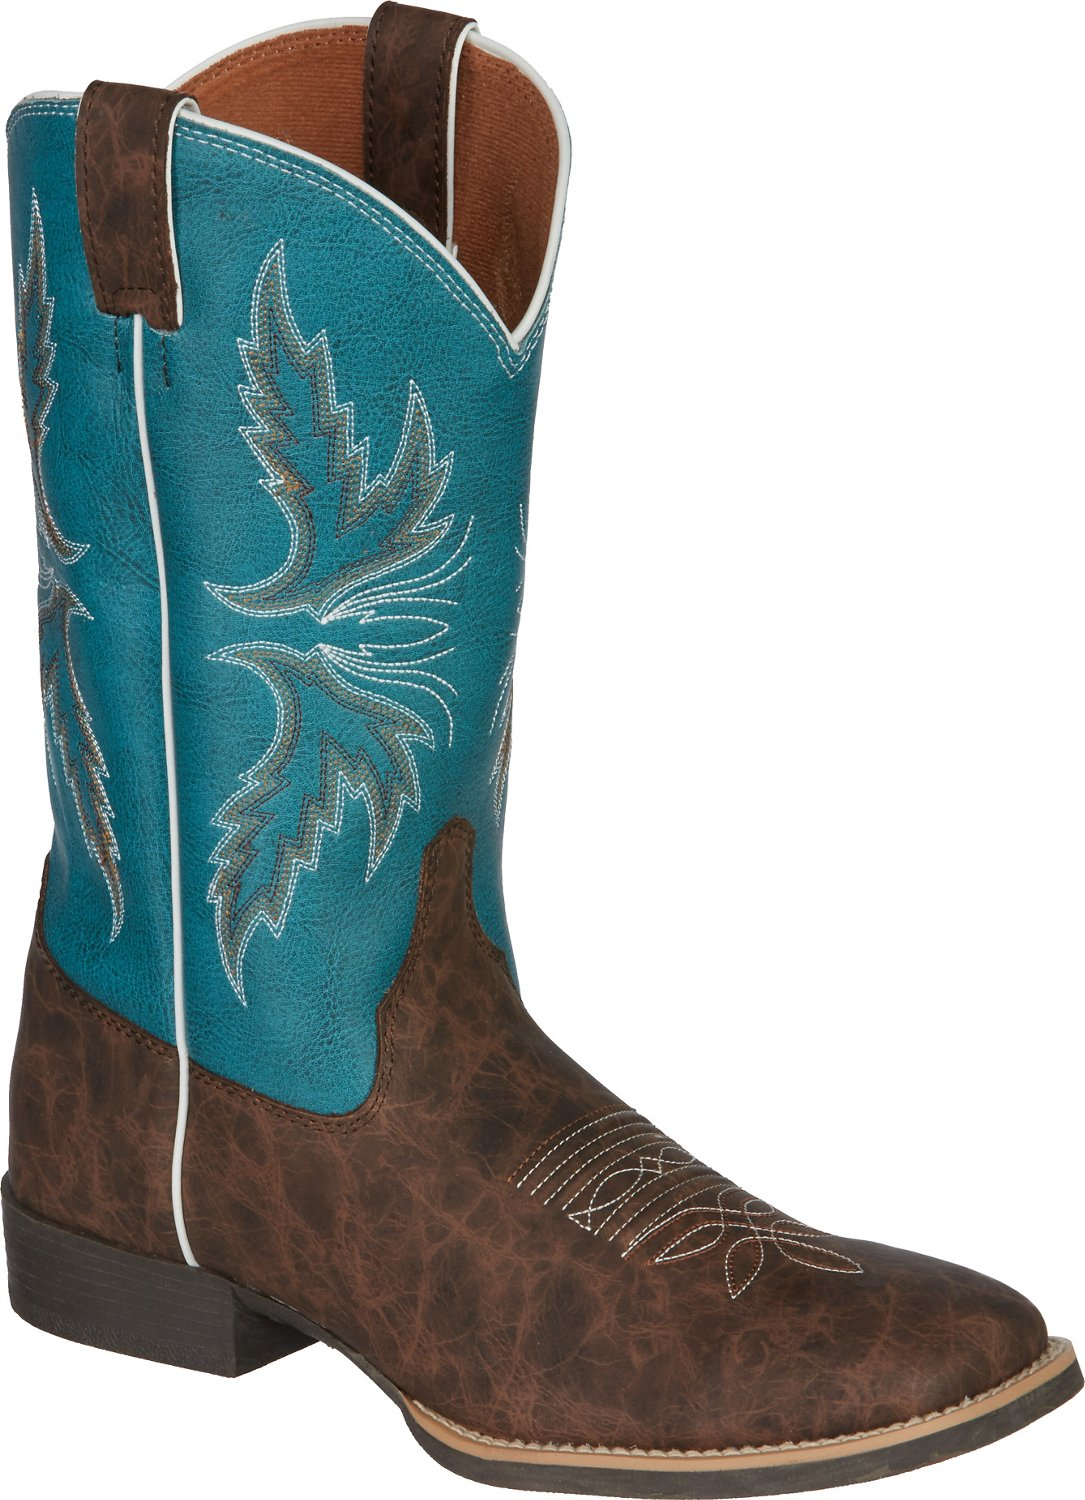 Justin Kids' Cowhide Bent Rail Western Boots - view number 2